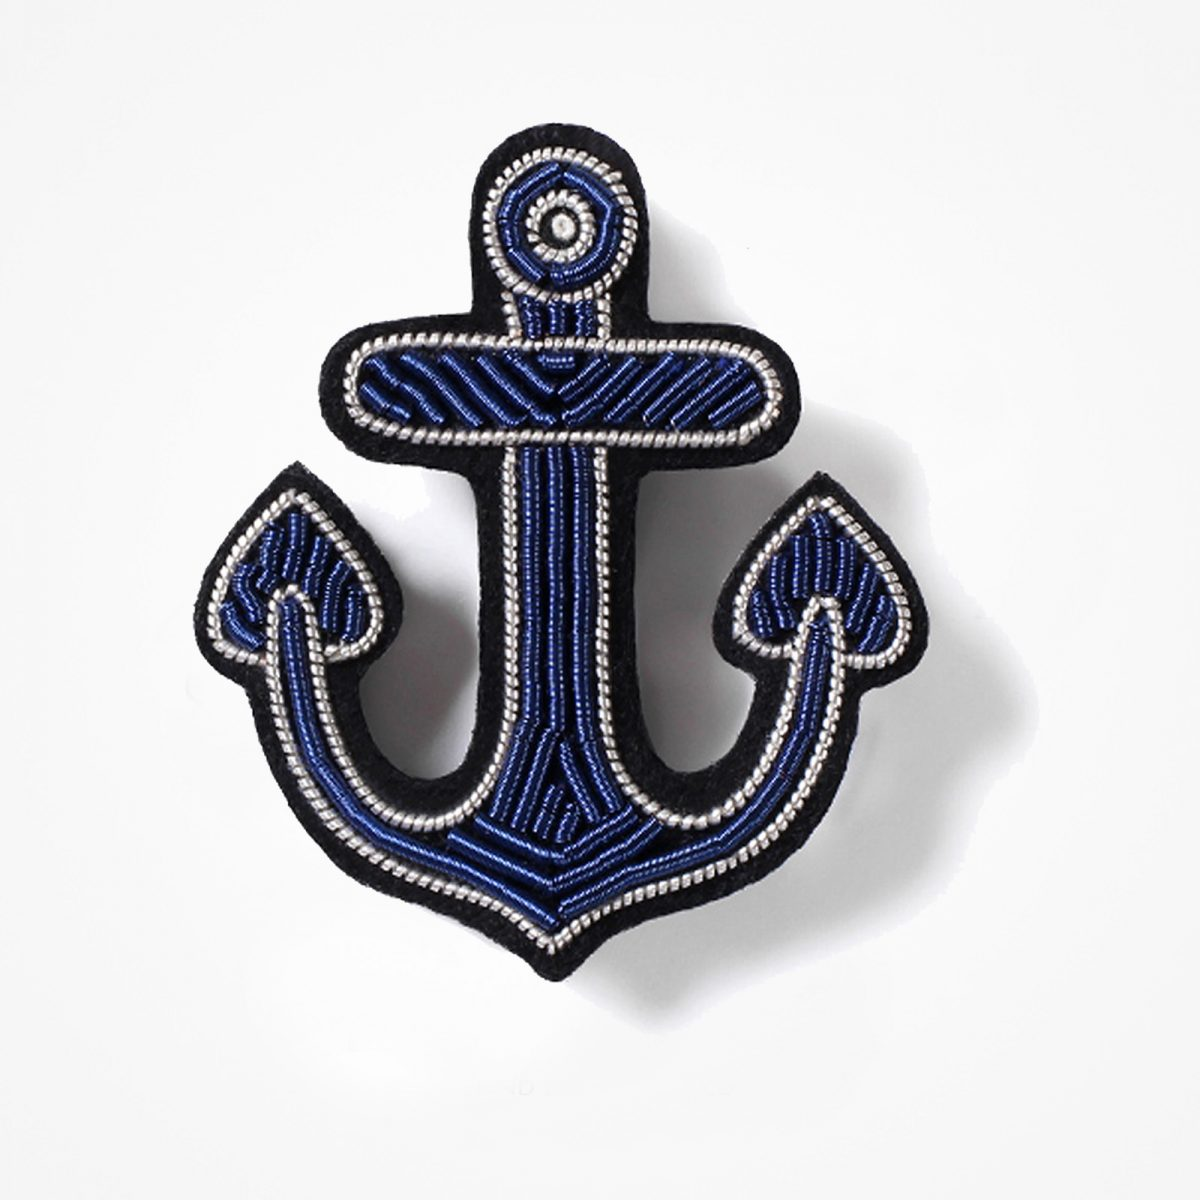 Anchor Embroidered Blazer Bullion Patch - Fashionable Anchor Blazer Bullion PatchBullion wire hand-stitched on Black colour FeltMade by skilled artisansSize is approx 3x3 inchesAvailable gold, silver and blue colours Bullion wireWith pin backing, sew-on backing available 6